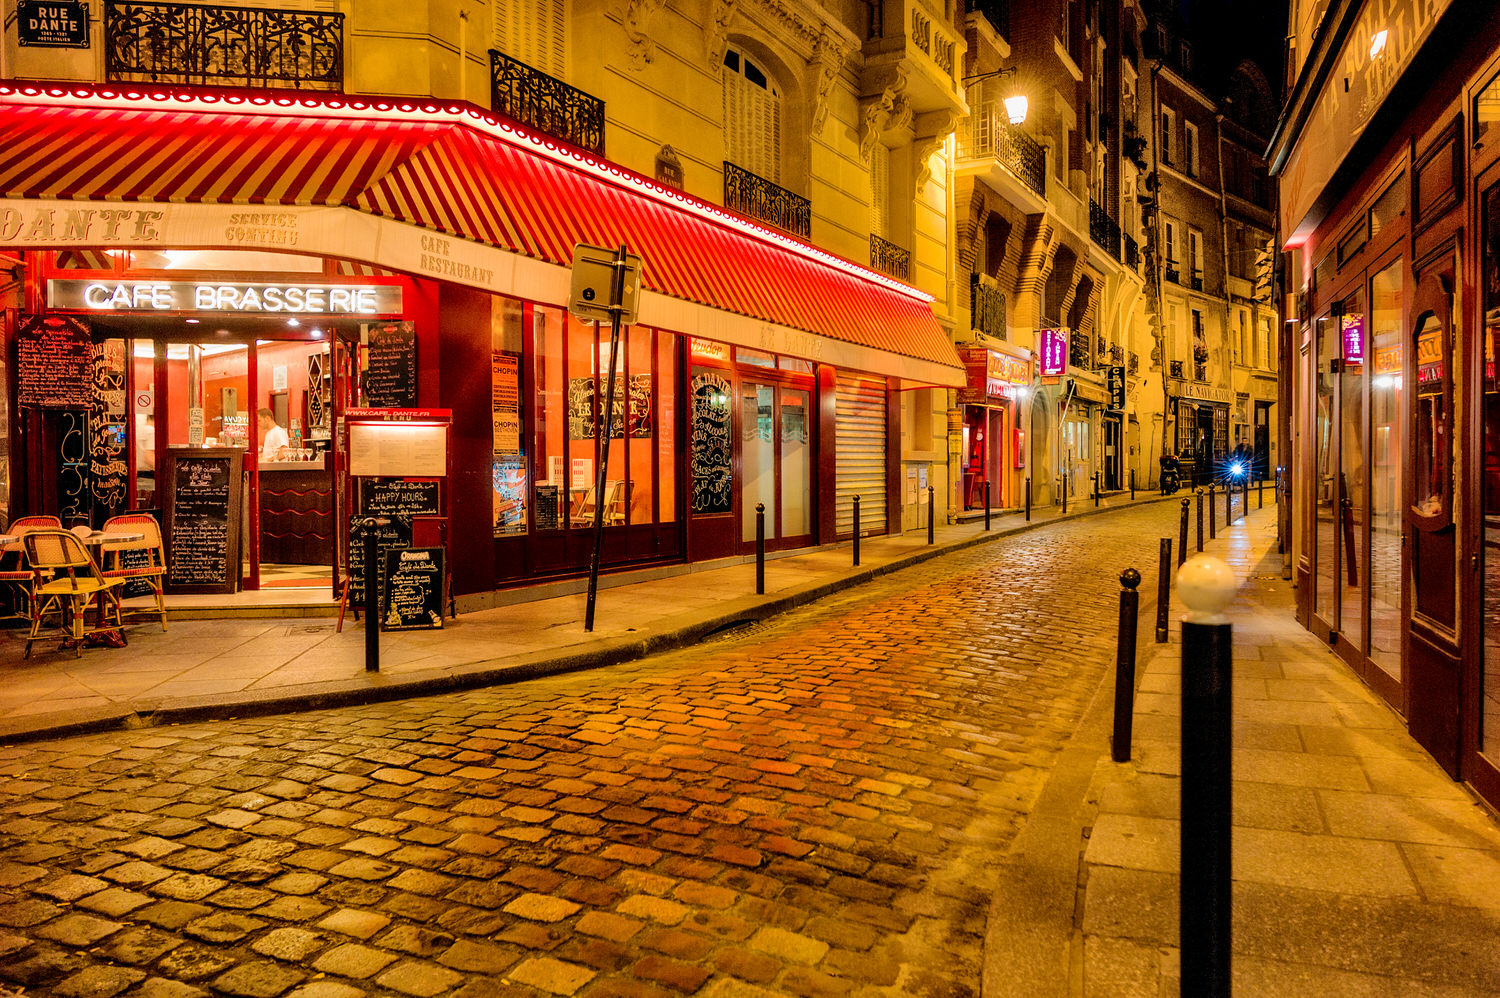 Warm, incandescent street lighting    illuminates the narrow cobbled street outside the    Le Dante Cafe Brasserie    in the Latin Quarter of Paris at night.